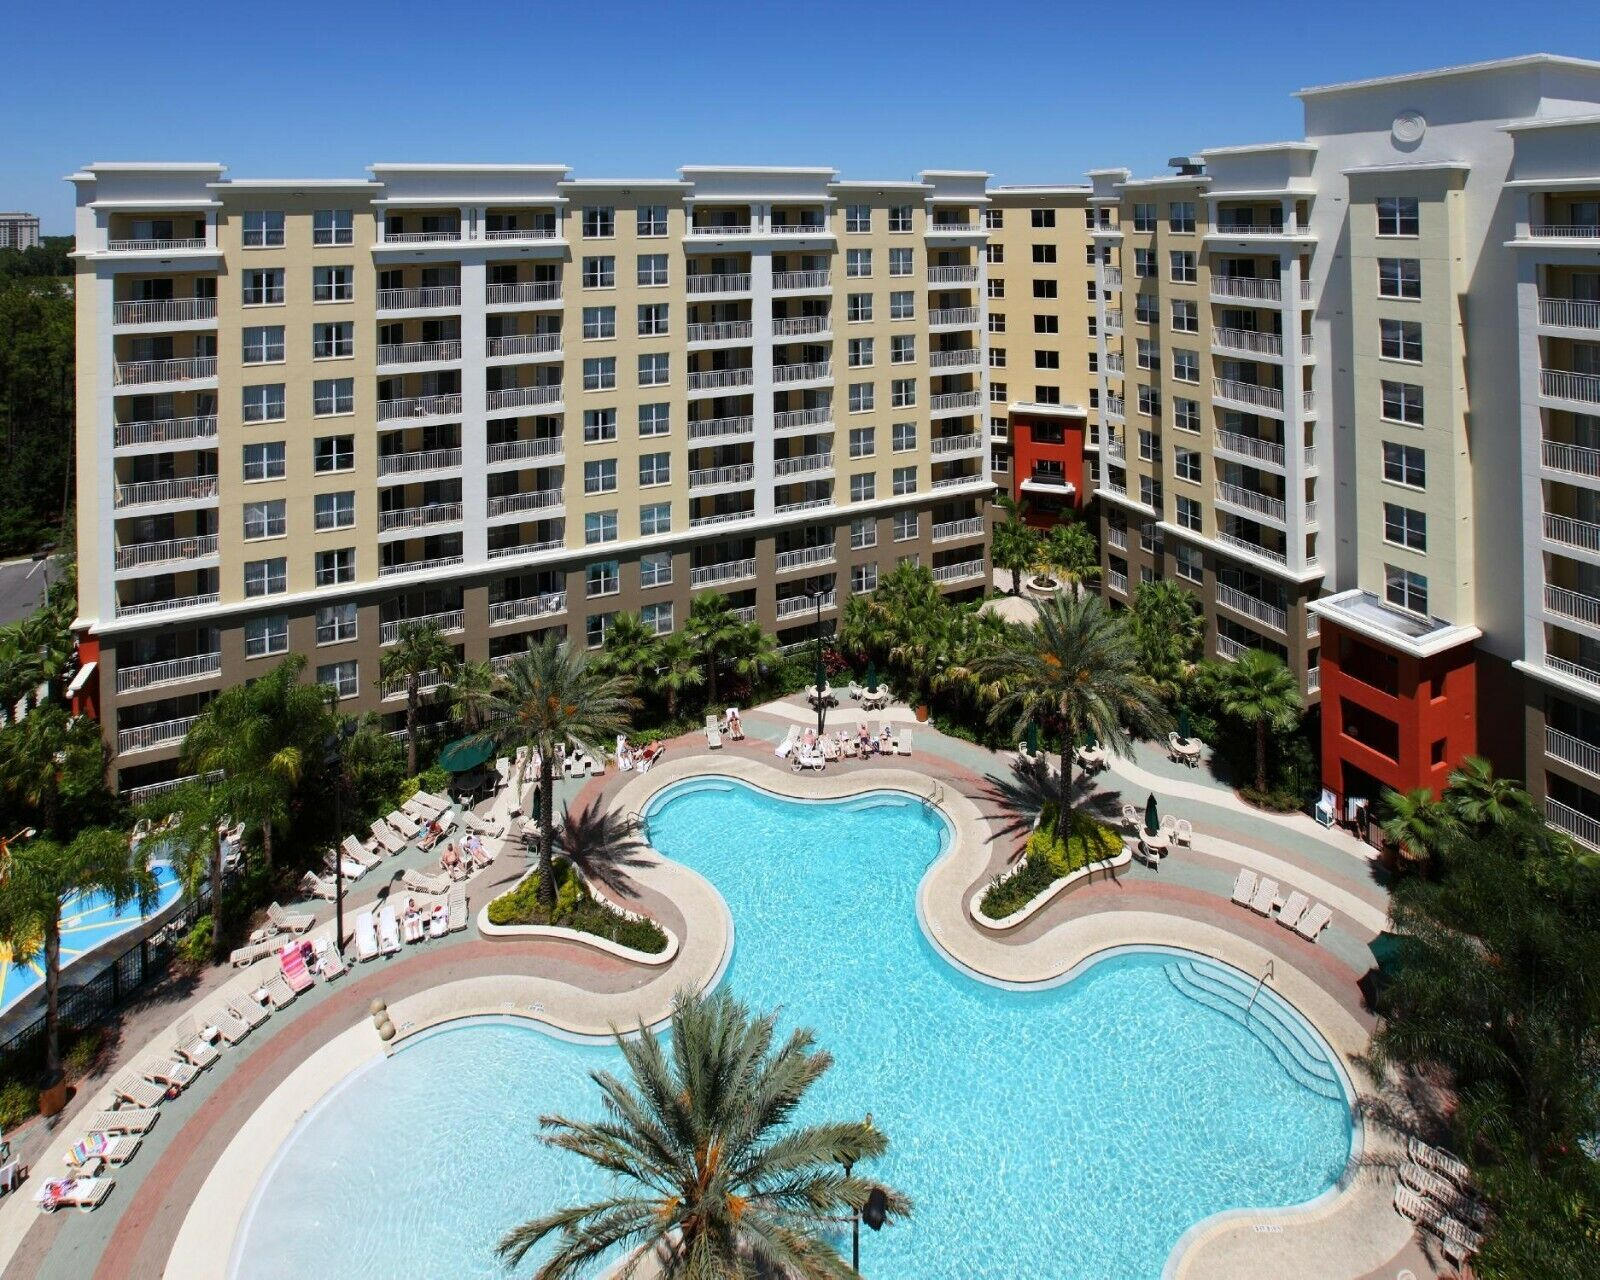 92,500 RCI POINTS VACATION VILLAGE AT PARKWAY KISSIMMEE FLORIDA TIMESHARE DEED - $9.50